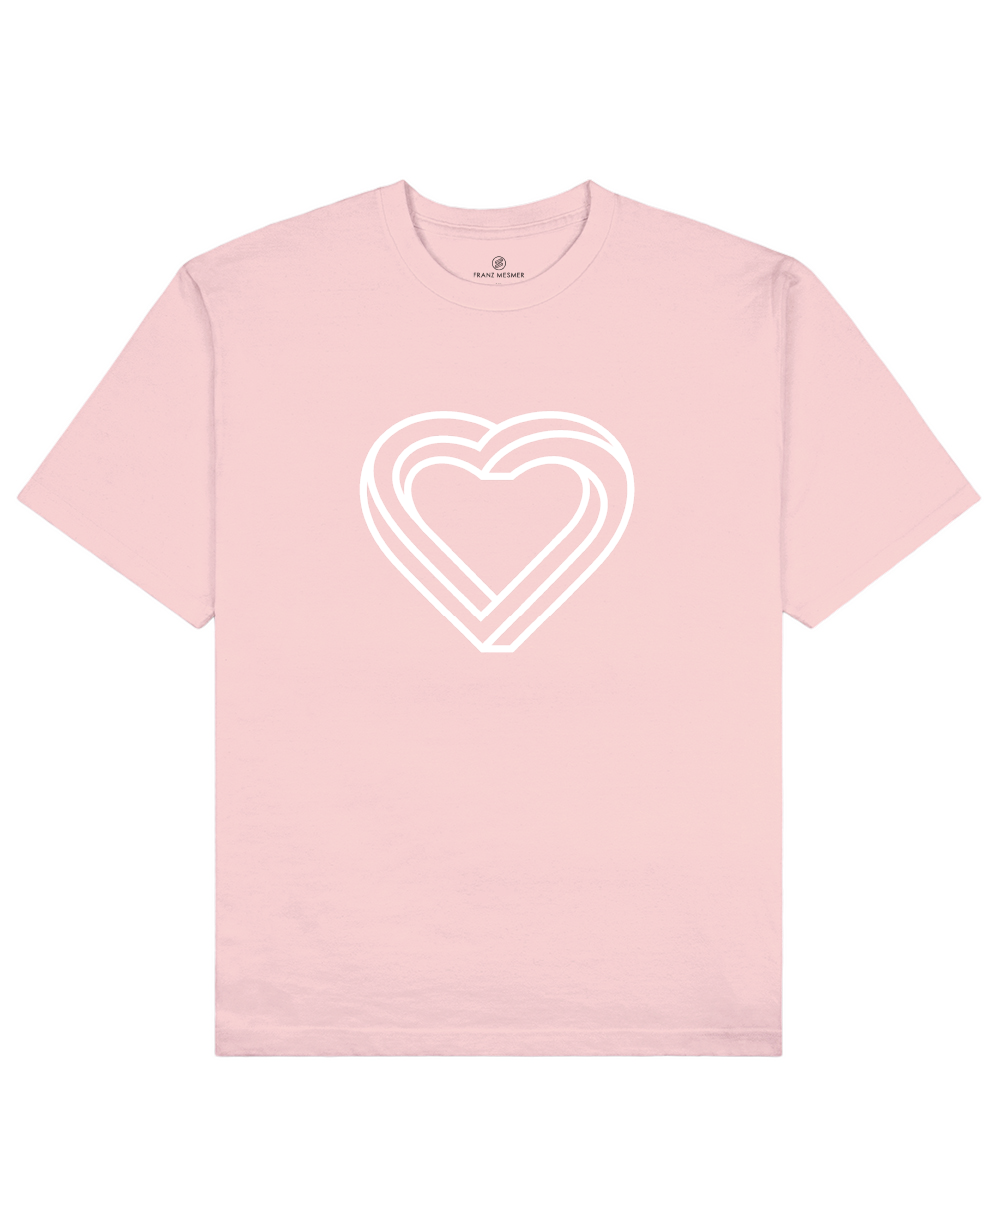 Impossible Heart Print T-Shirt in Pink - T-Shirts - Franz Mesmer - BRANMA